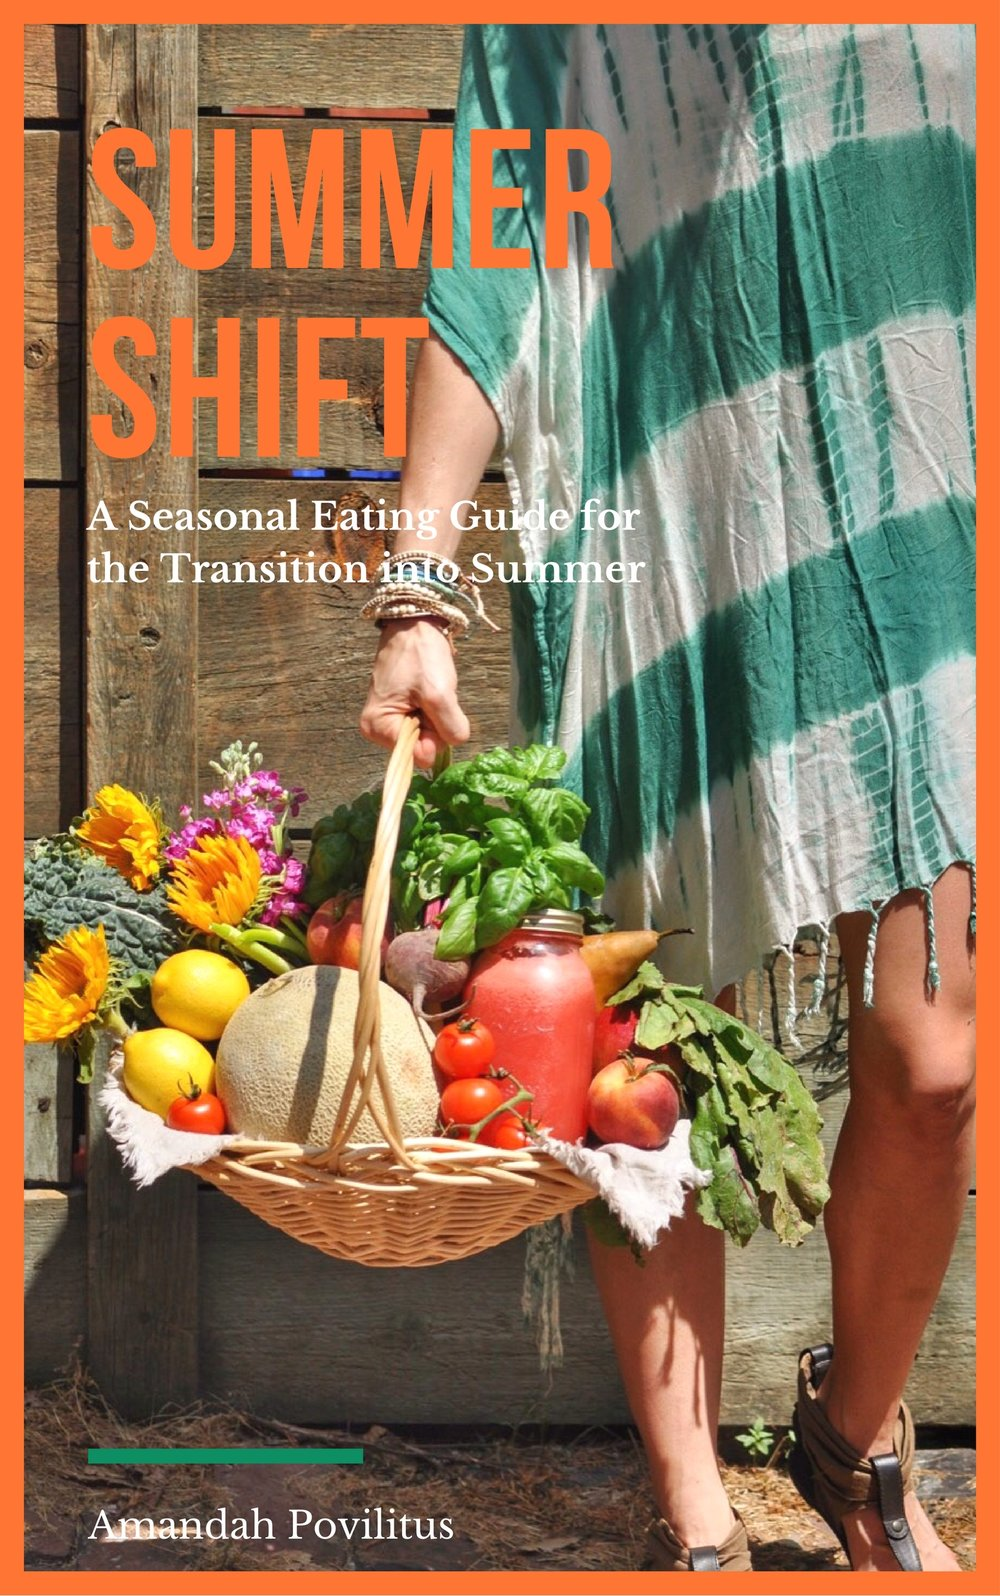 Summer shift: my 36-page, instant download e-book with more than 25 original recipes for the transition from spring into summer. click here to learn more + to get your copy!